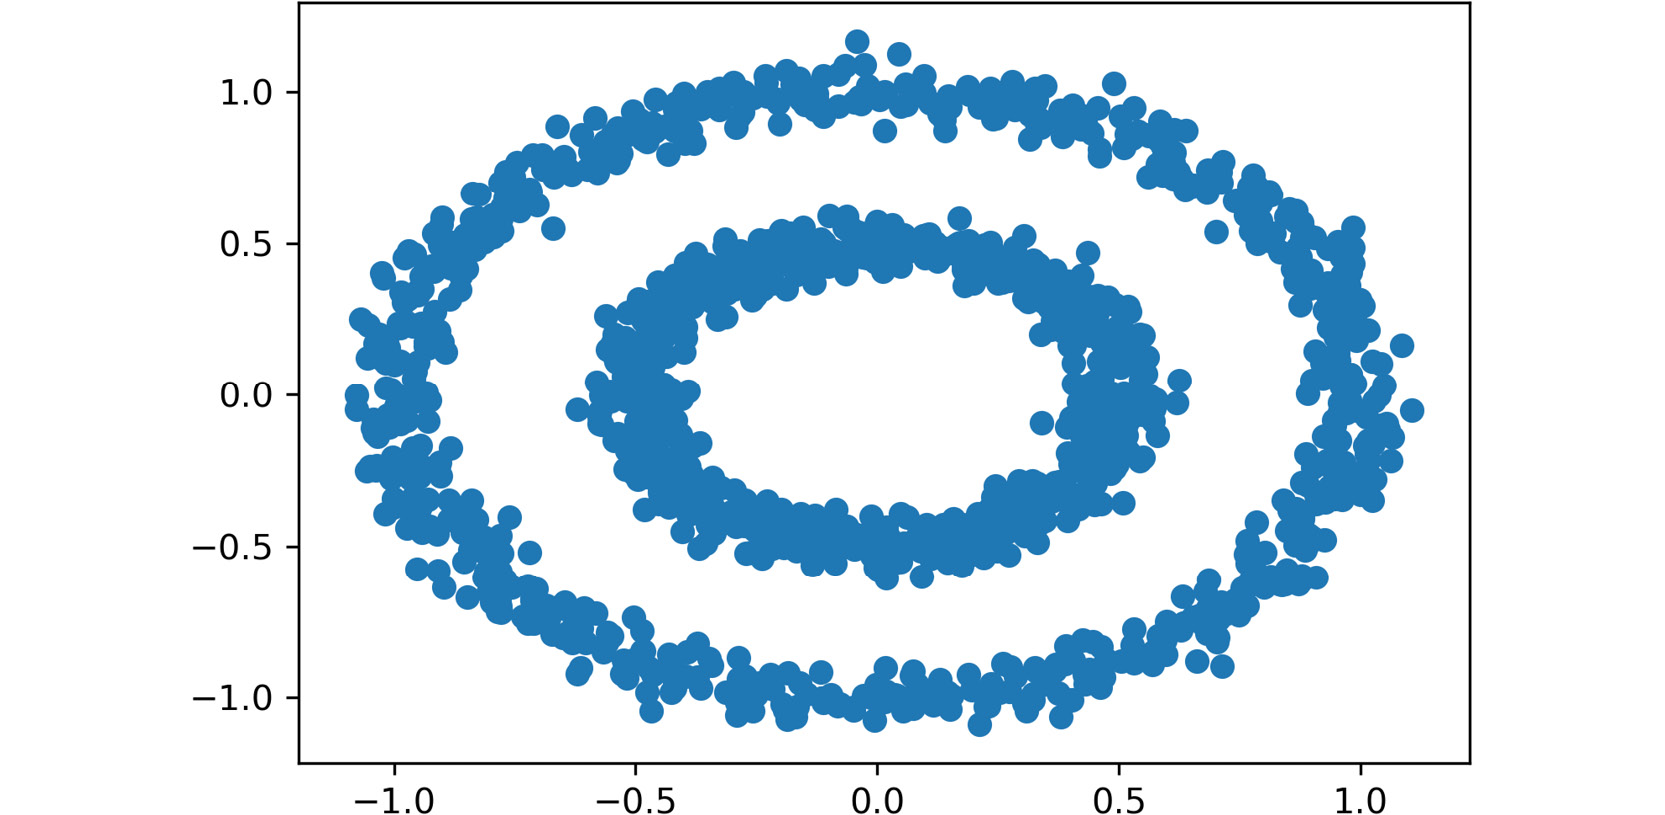 Figure 2.4: A scatter plot of the circles dataset